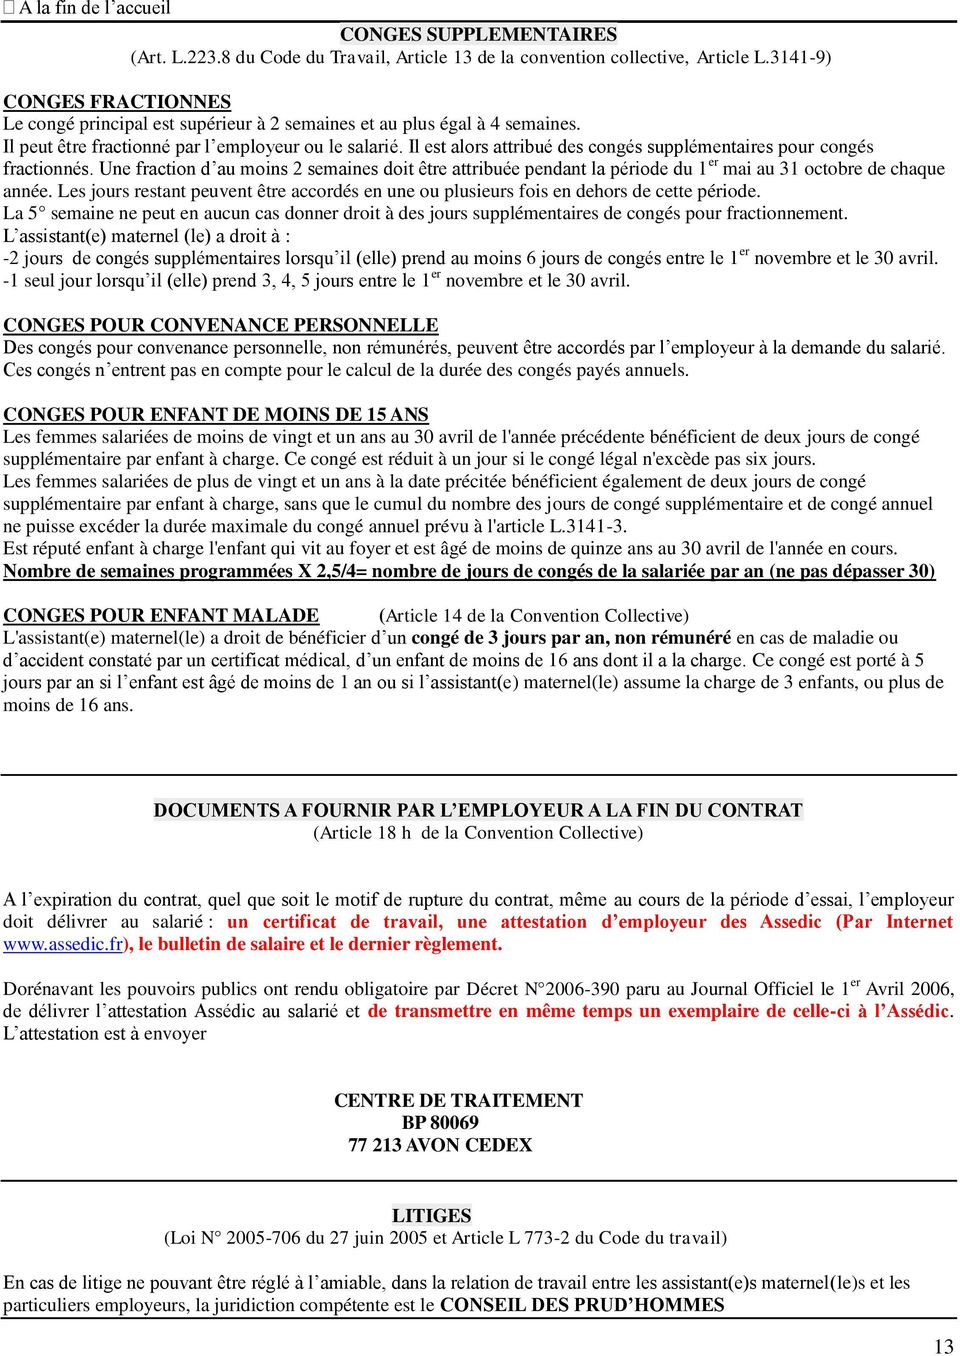 Contrat De Travail A Duree Determinee Ou Occasionnel Pdf